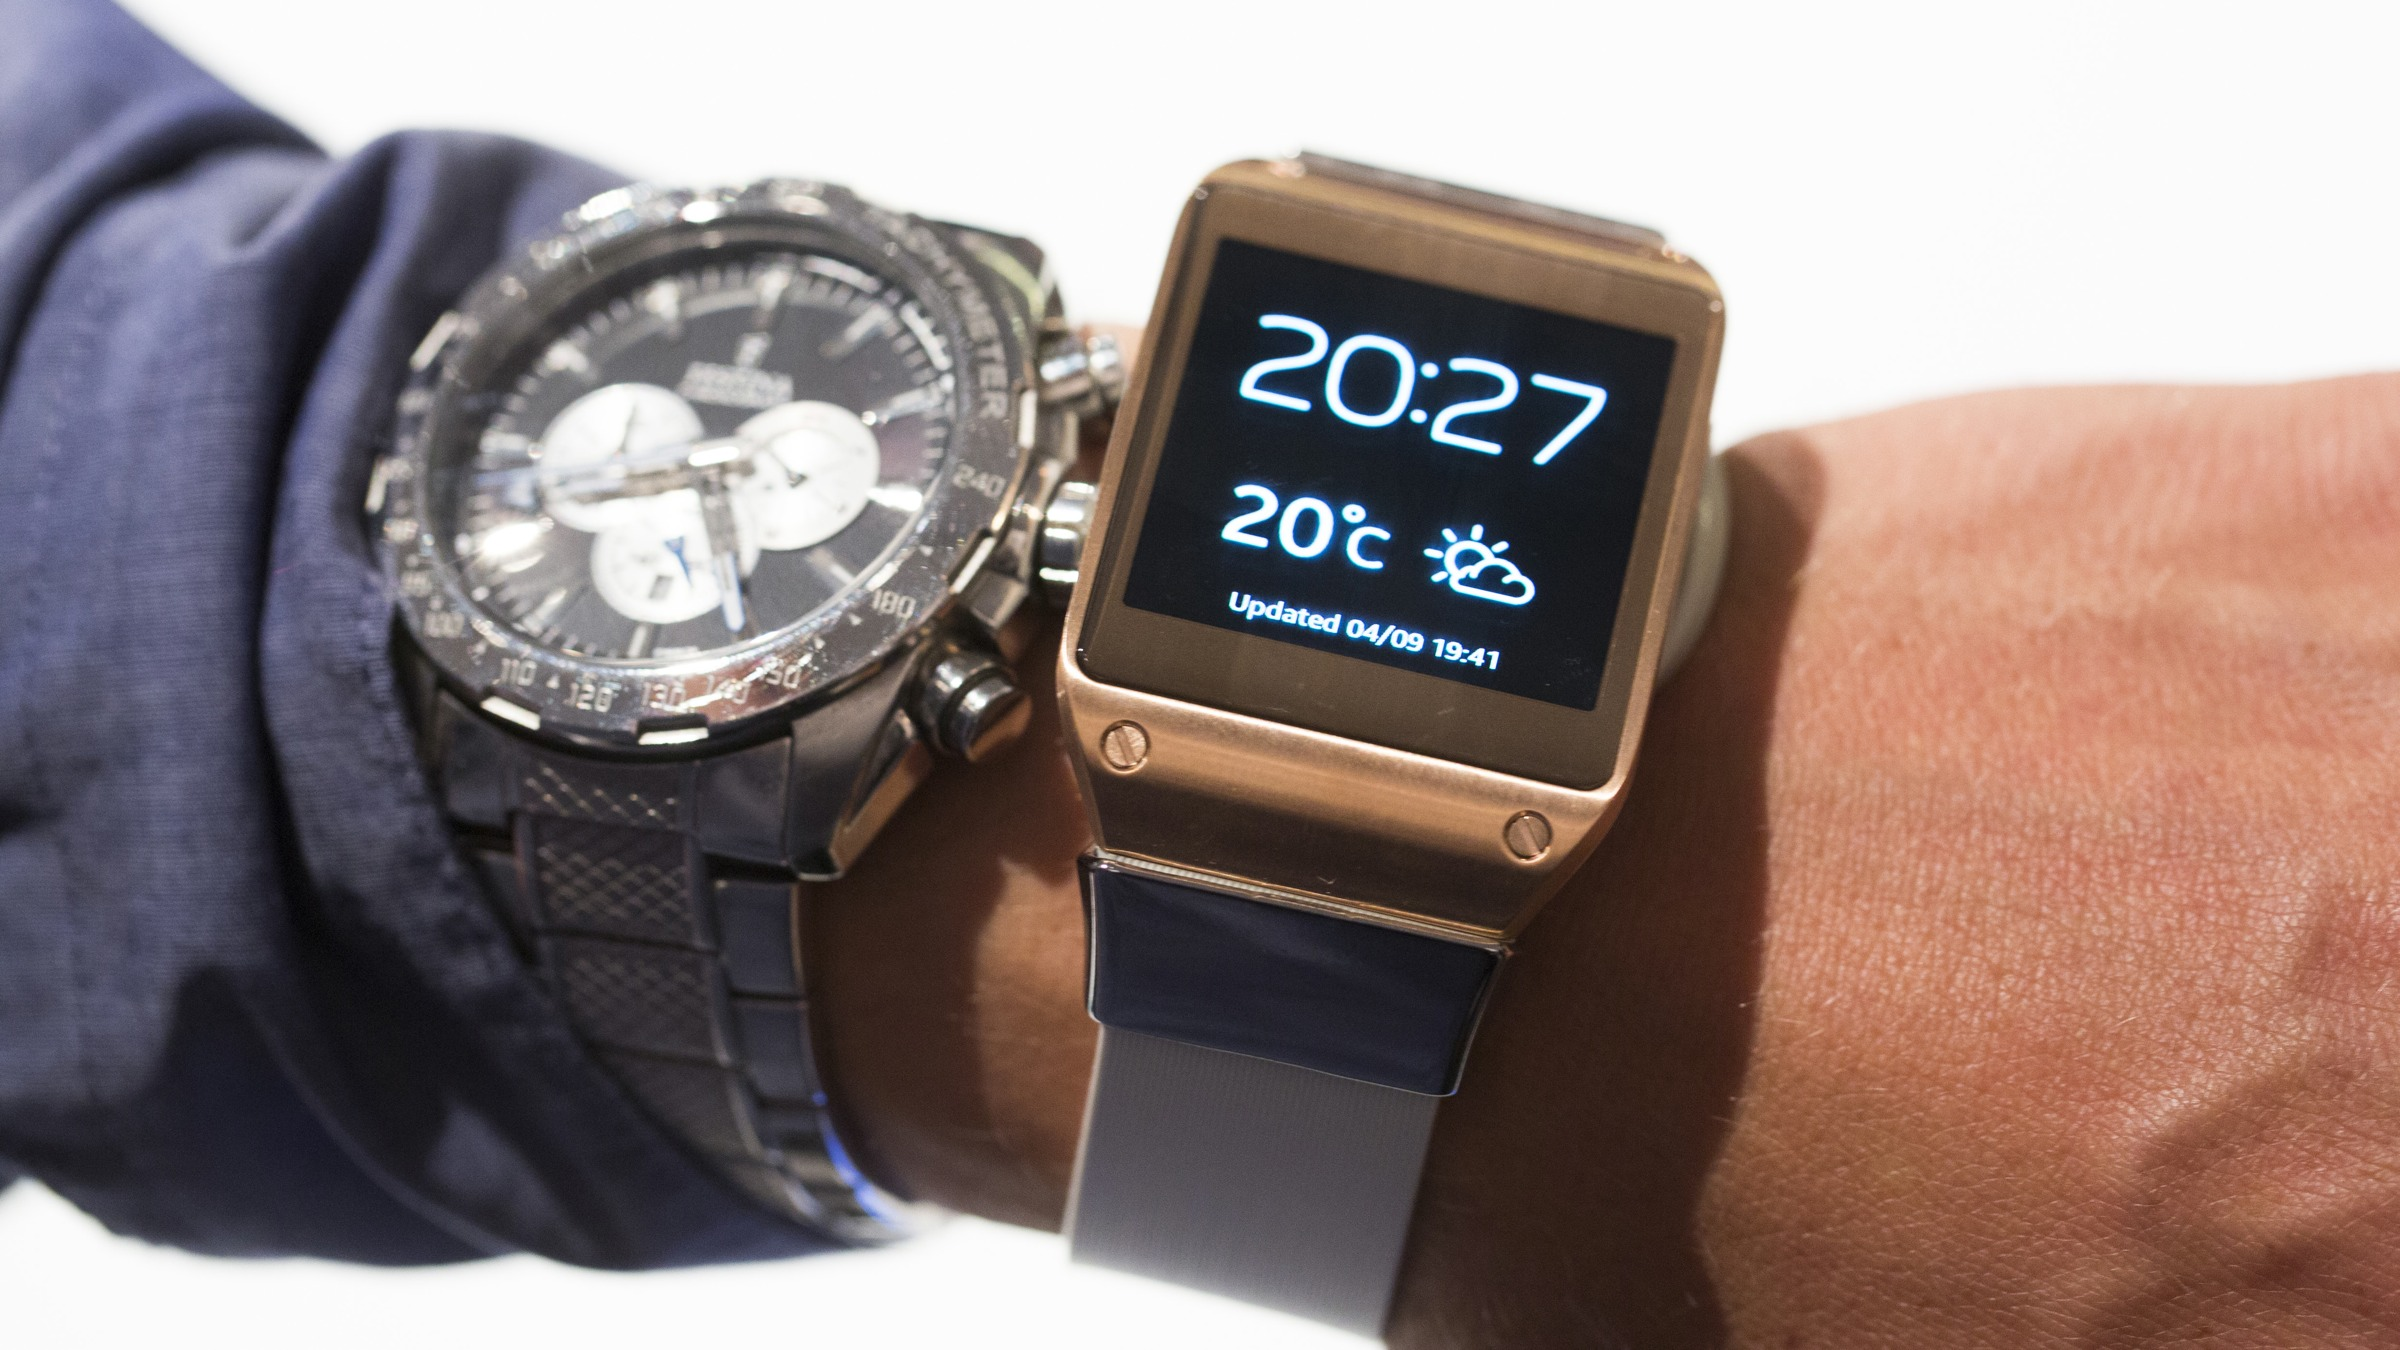 Apple and Samsung's smartwatches are going to be way too ...